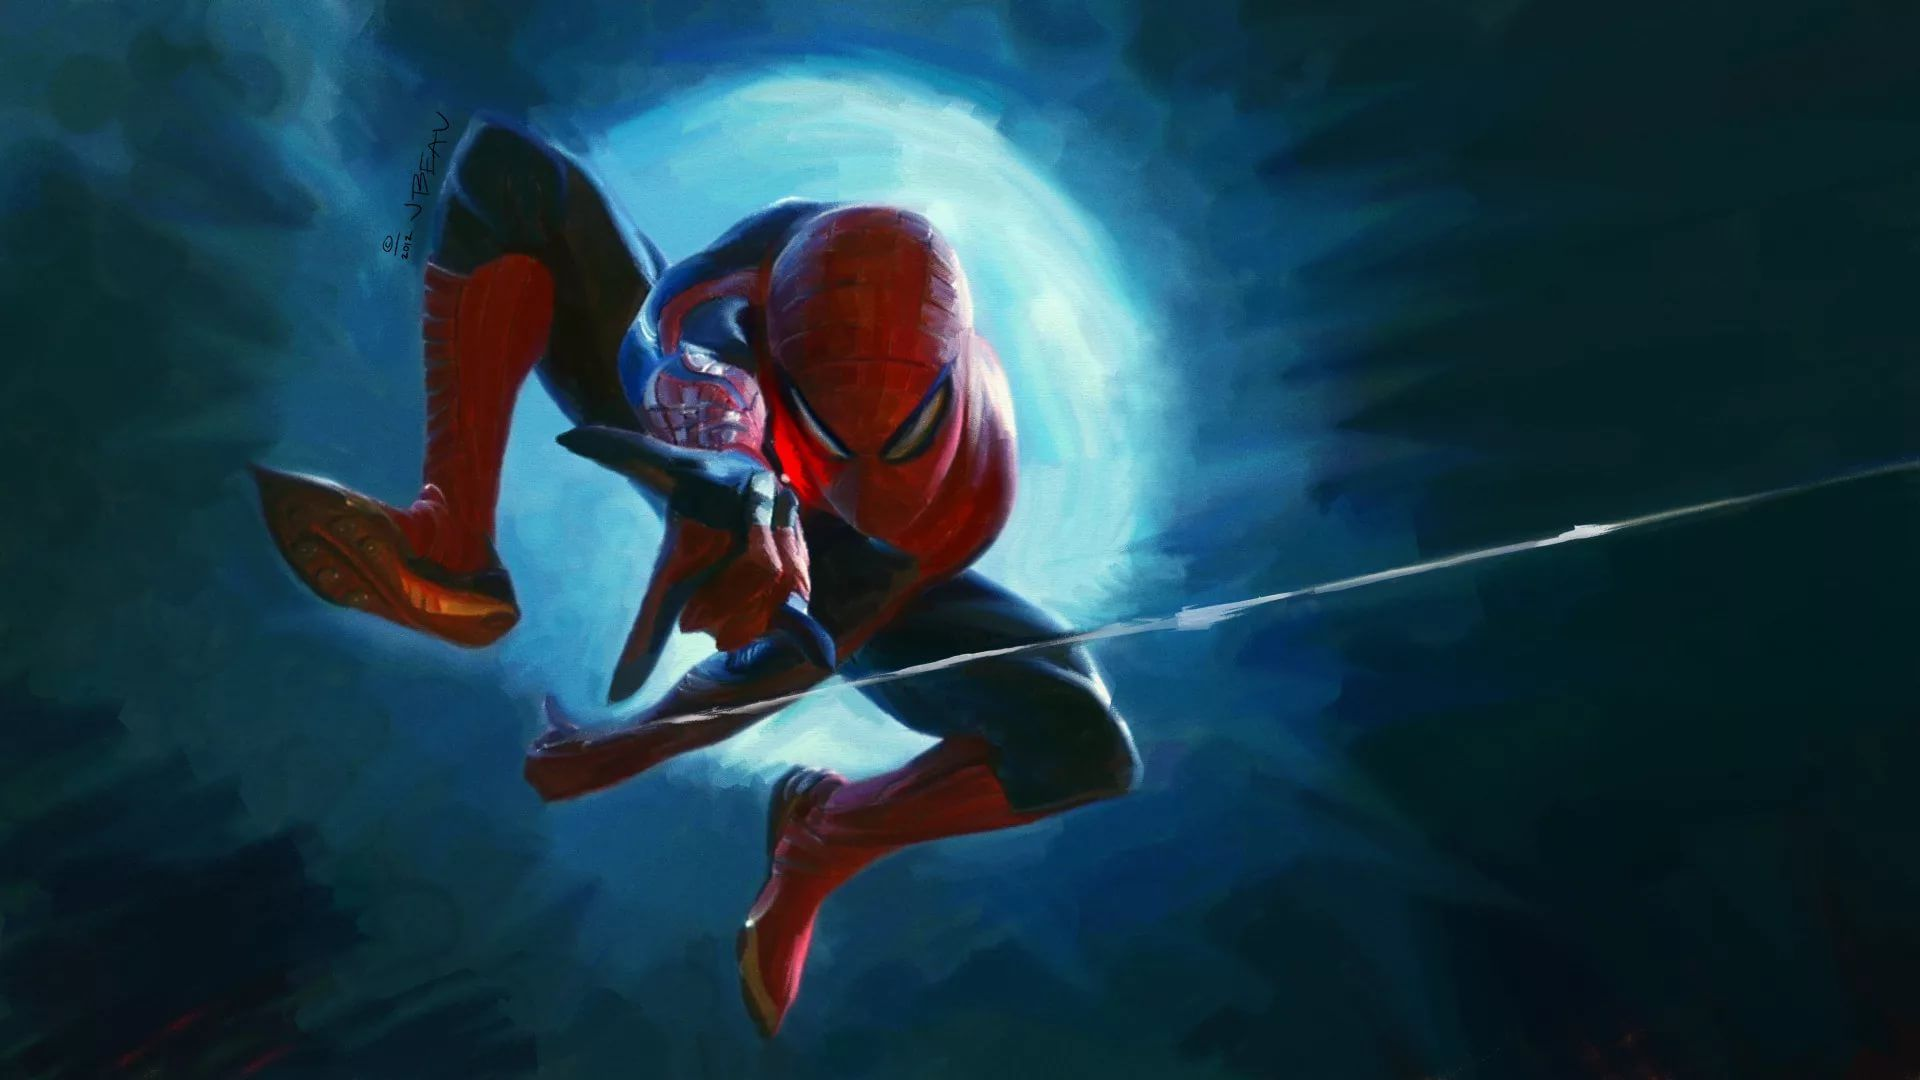 Spiderman wallpaper image hd